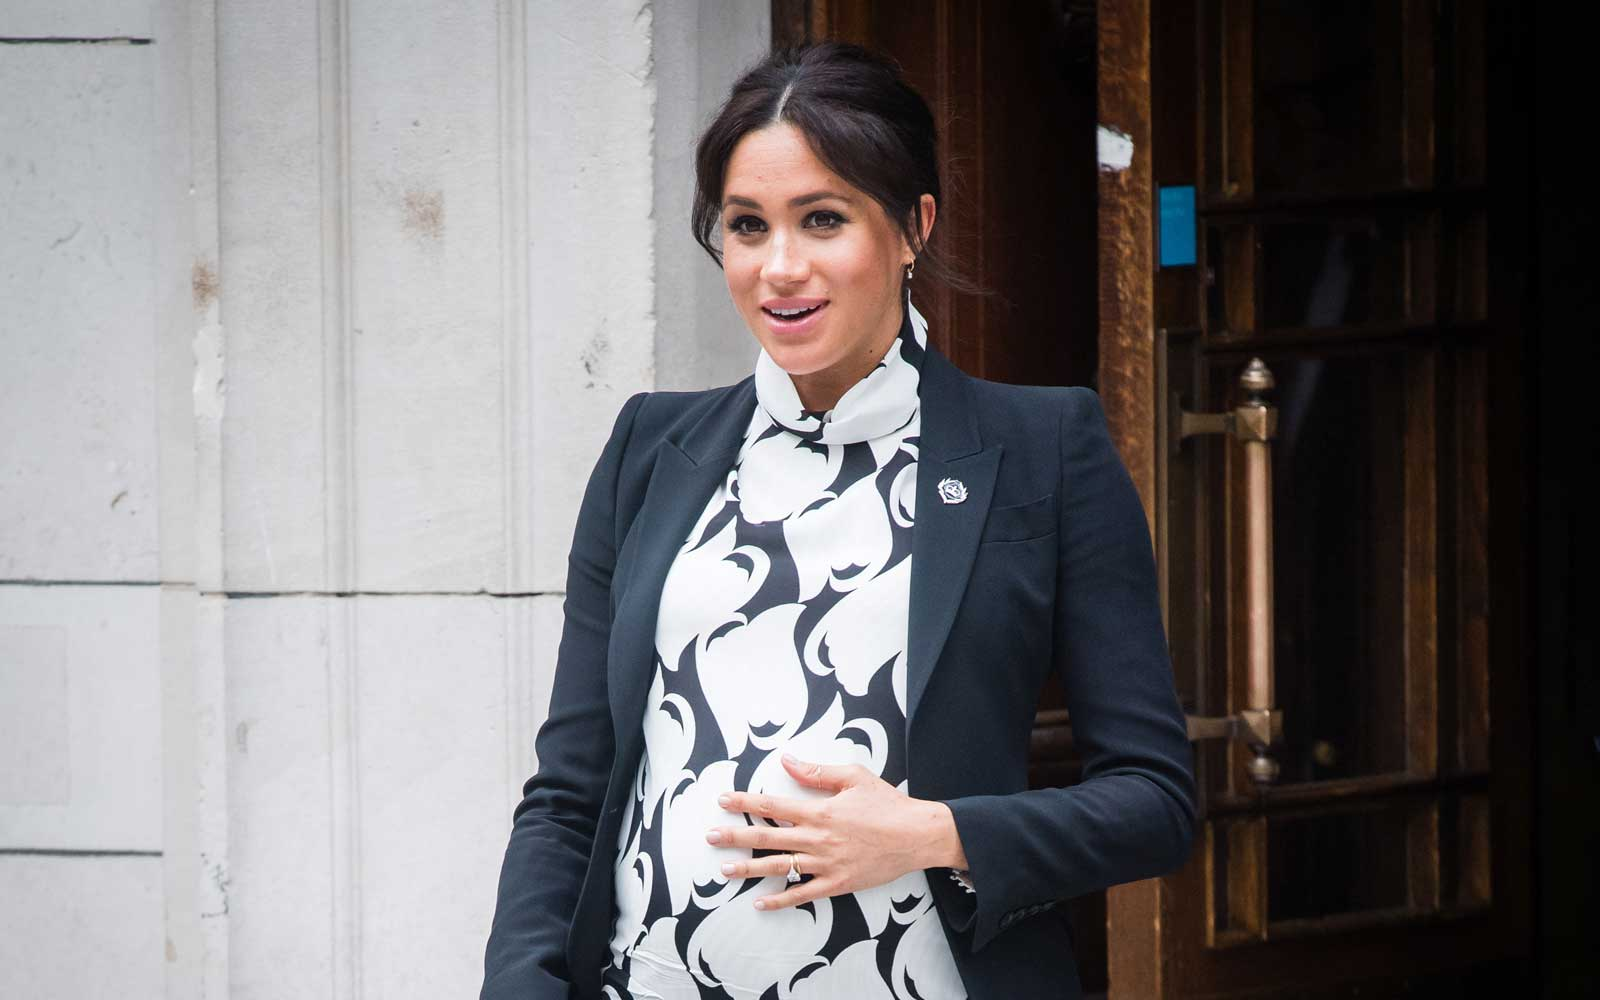 An Ambulance Was Spotted Outside Meghan Markle and Prince Harry's Home and Royal Baby Watchers Are Going Wild